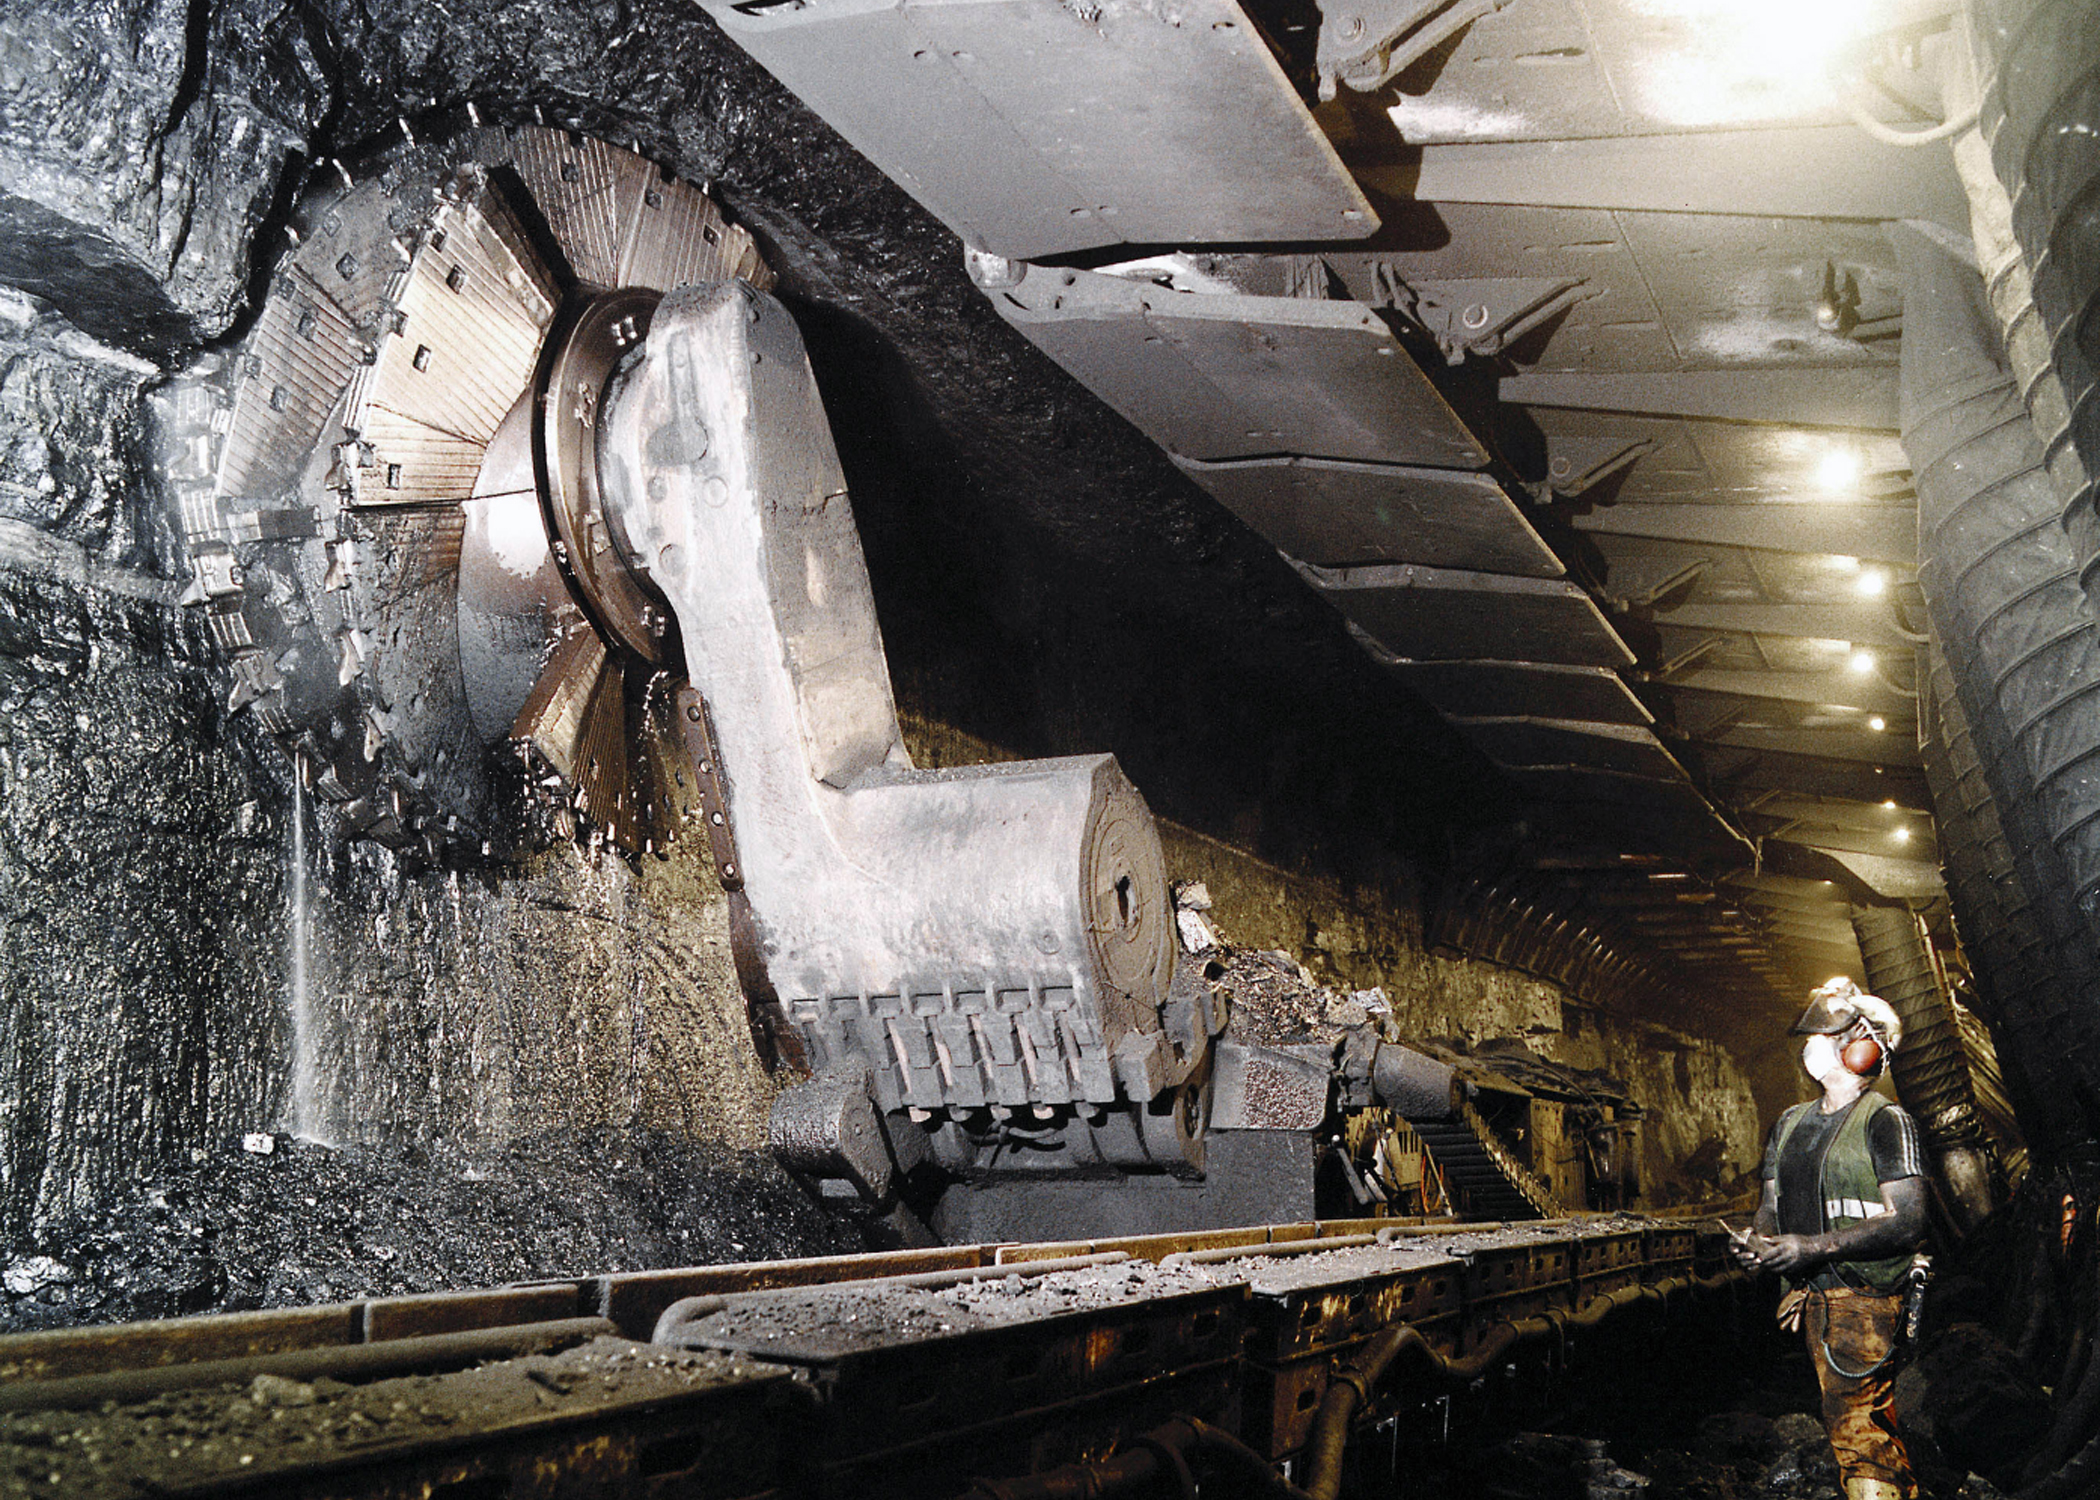 Longwall mining demands safety and reliability in equipment